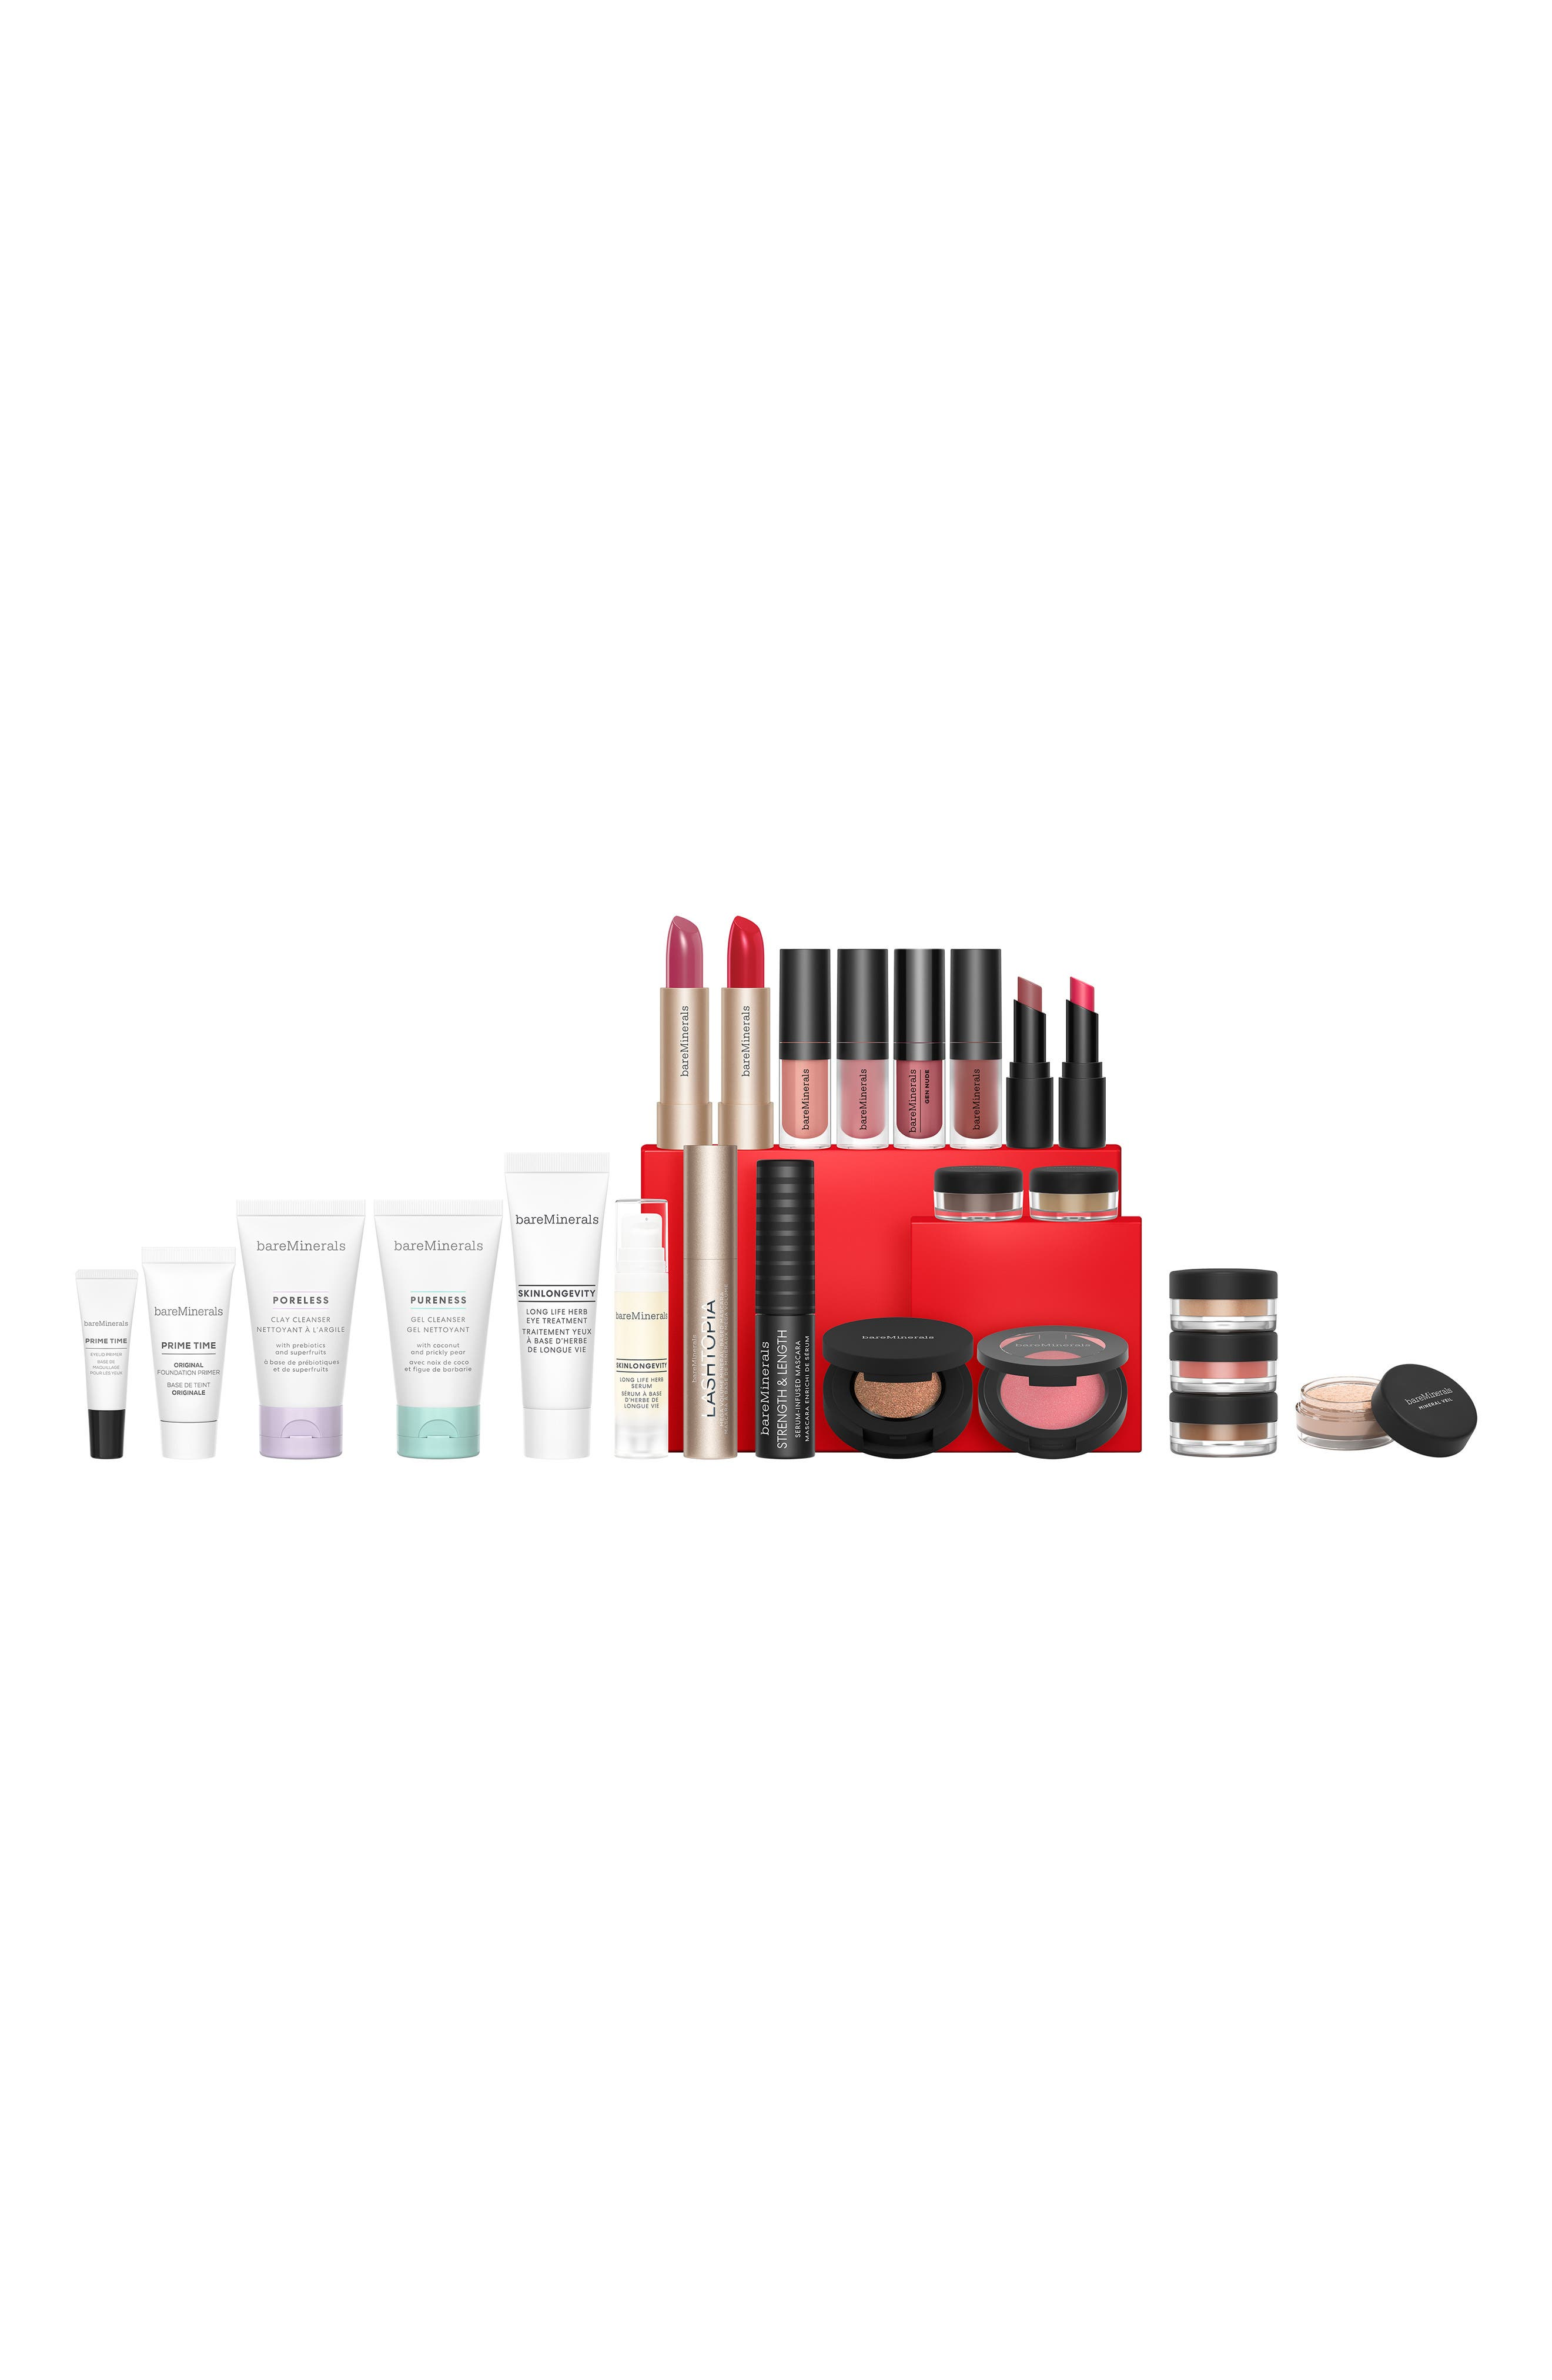 What it is: A limited-edition advent calendar filled with mini bareMinerals\\\' favorites to help you count down to the holidays. Set includes:- Skinlongevity Long Life Herb Serum (0.27 oz.)- Skinlongevity Long Life Herb Eye Treatment (0.1 oz.)- Poreless Clay Cleanser (1 oz.)- Pureness Gel Cleanser (1 oz.)- Prime Time Original Foundation Primer (0.24 oz.)- Mineral Veil Finishing Powder (0.03 oz.)- Loose Blush in Golden Gate (0.05 oz.)- Bounce & Blur